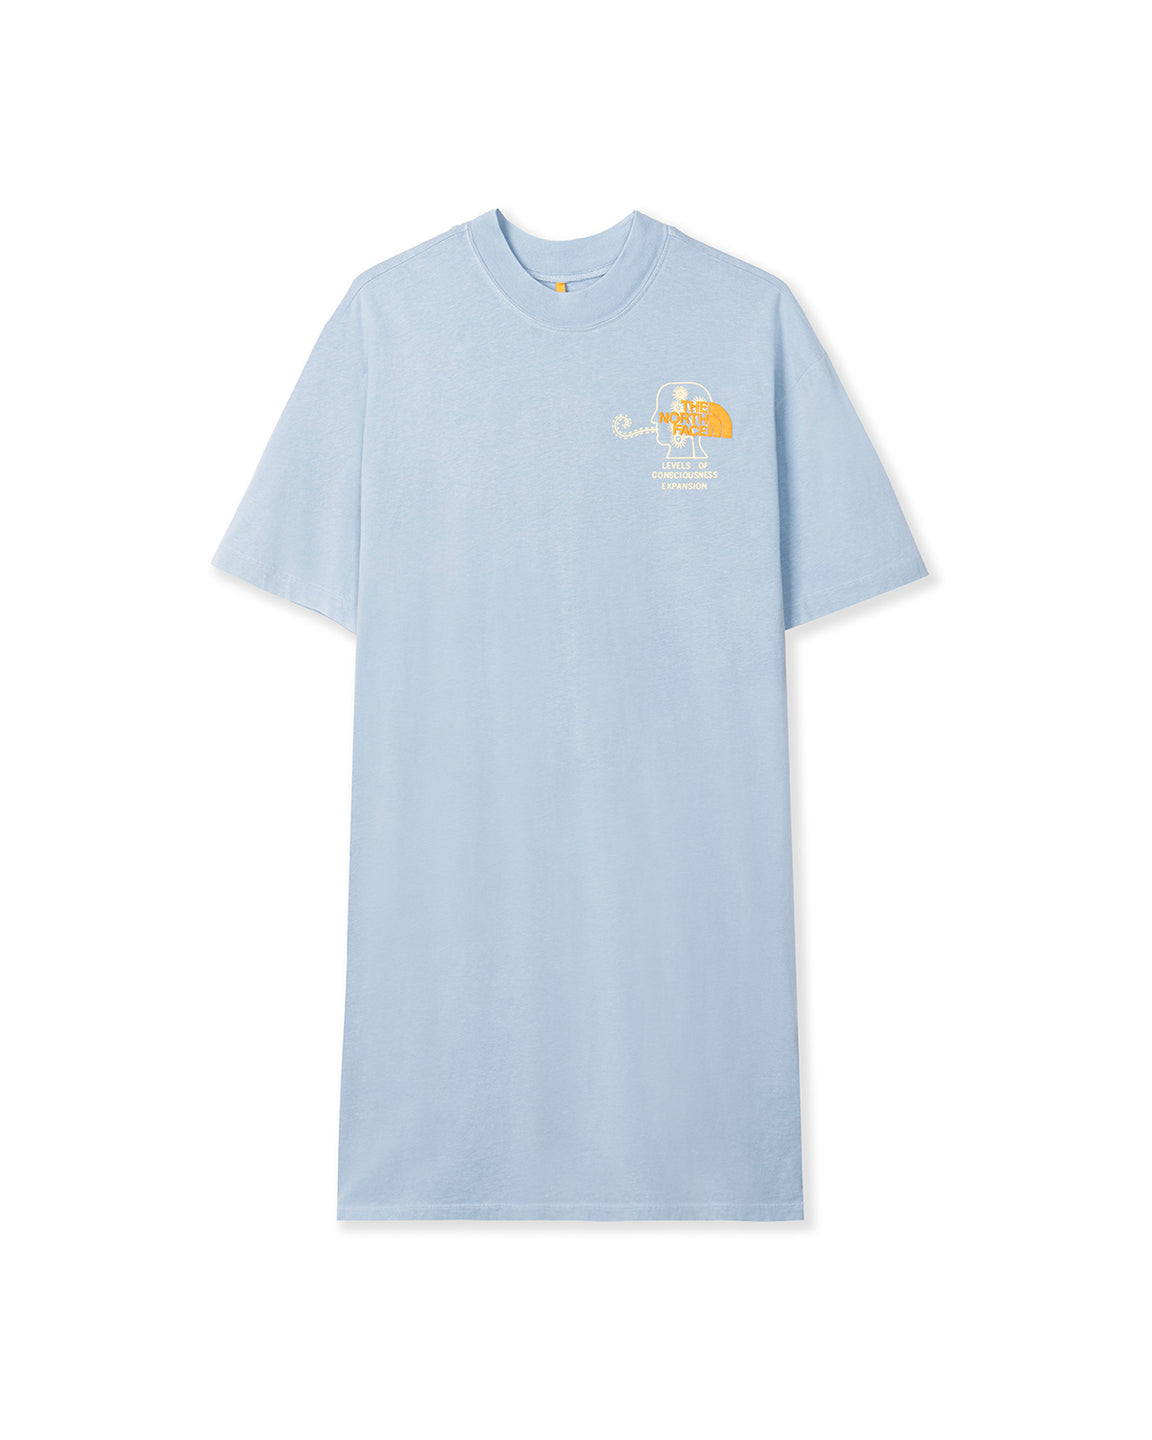 The North Face x Brain Dead T-Shirt Dress - Blue